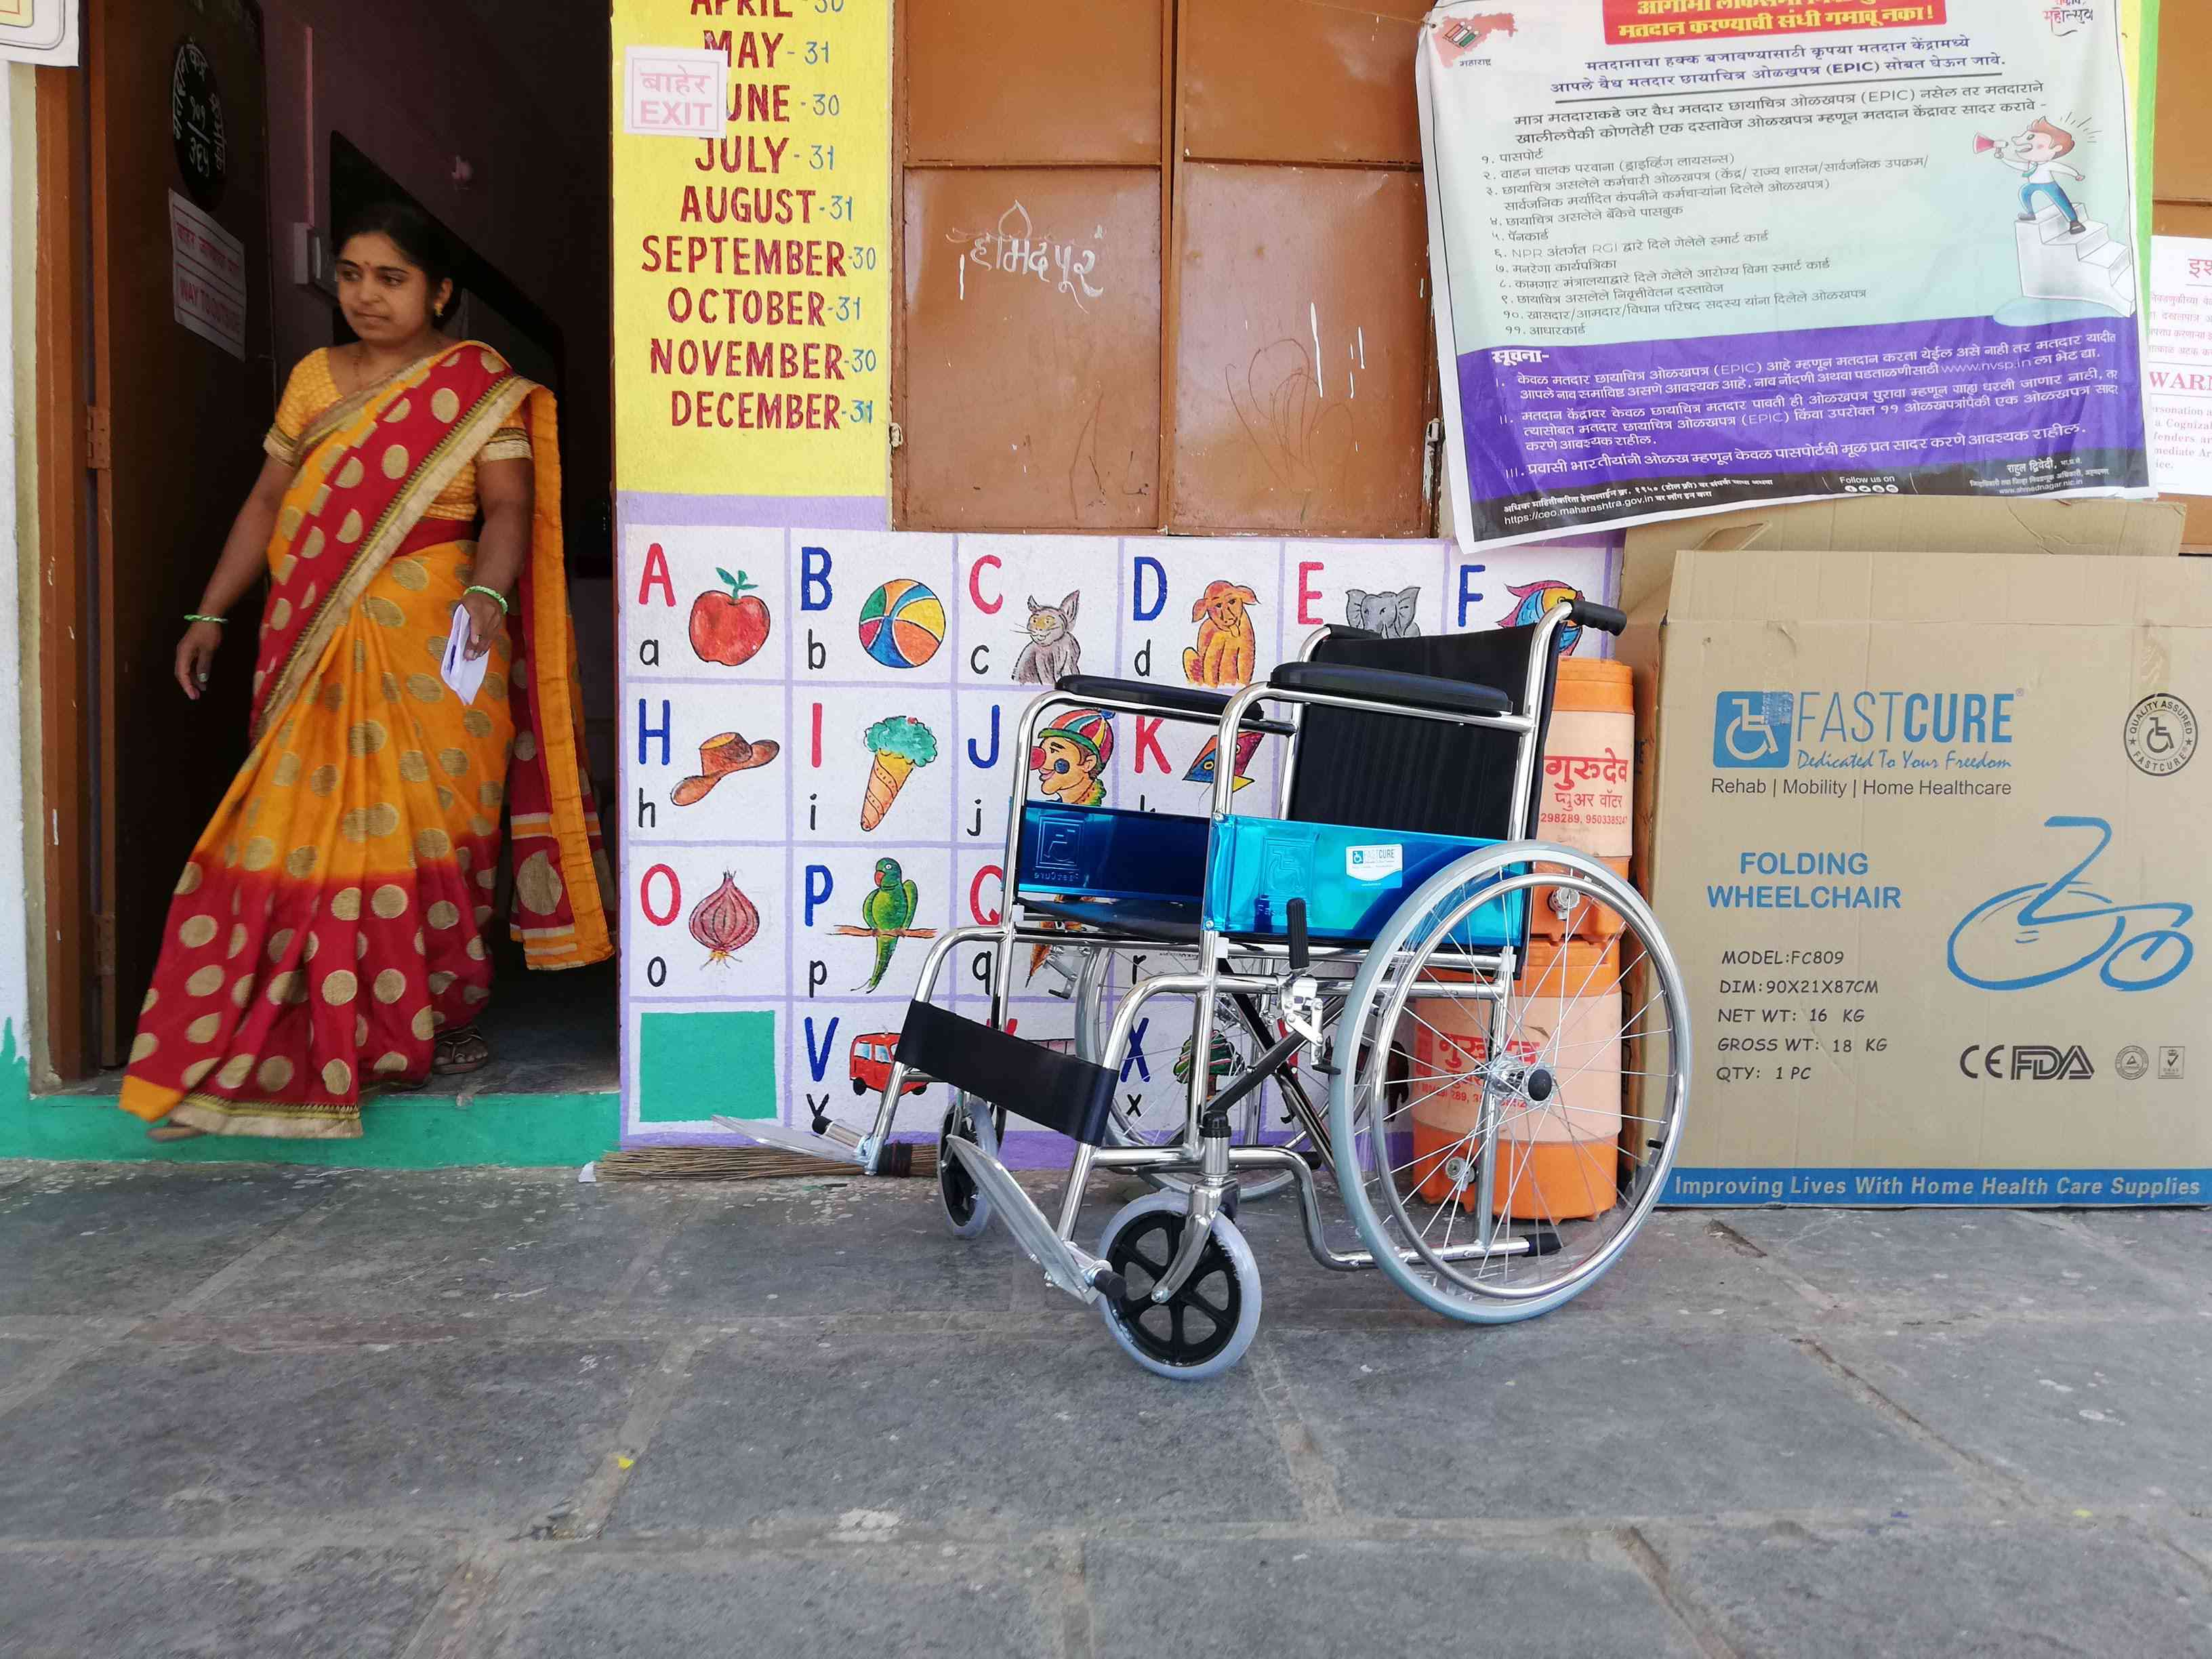 A wheelchair at a polling booth in Hamidpur village, Ahmednagar. The wheelchair had not been used until noon. Photo credit: Mridula Chari